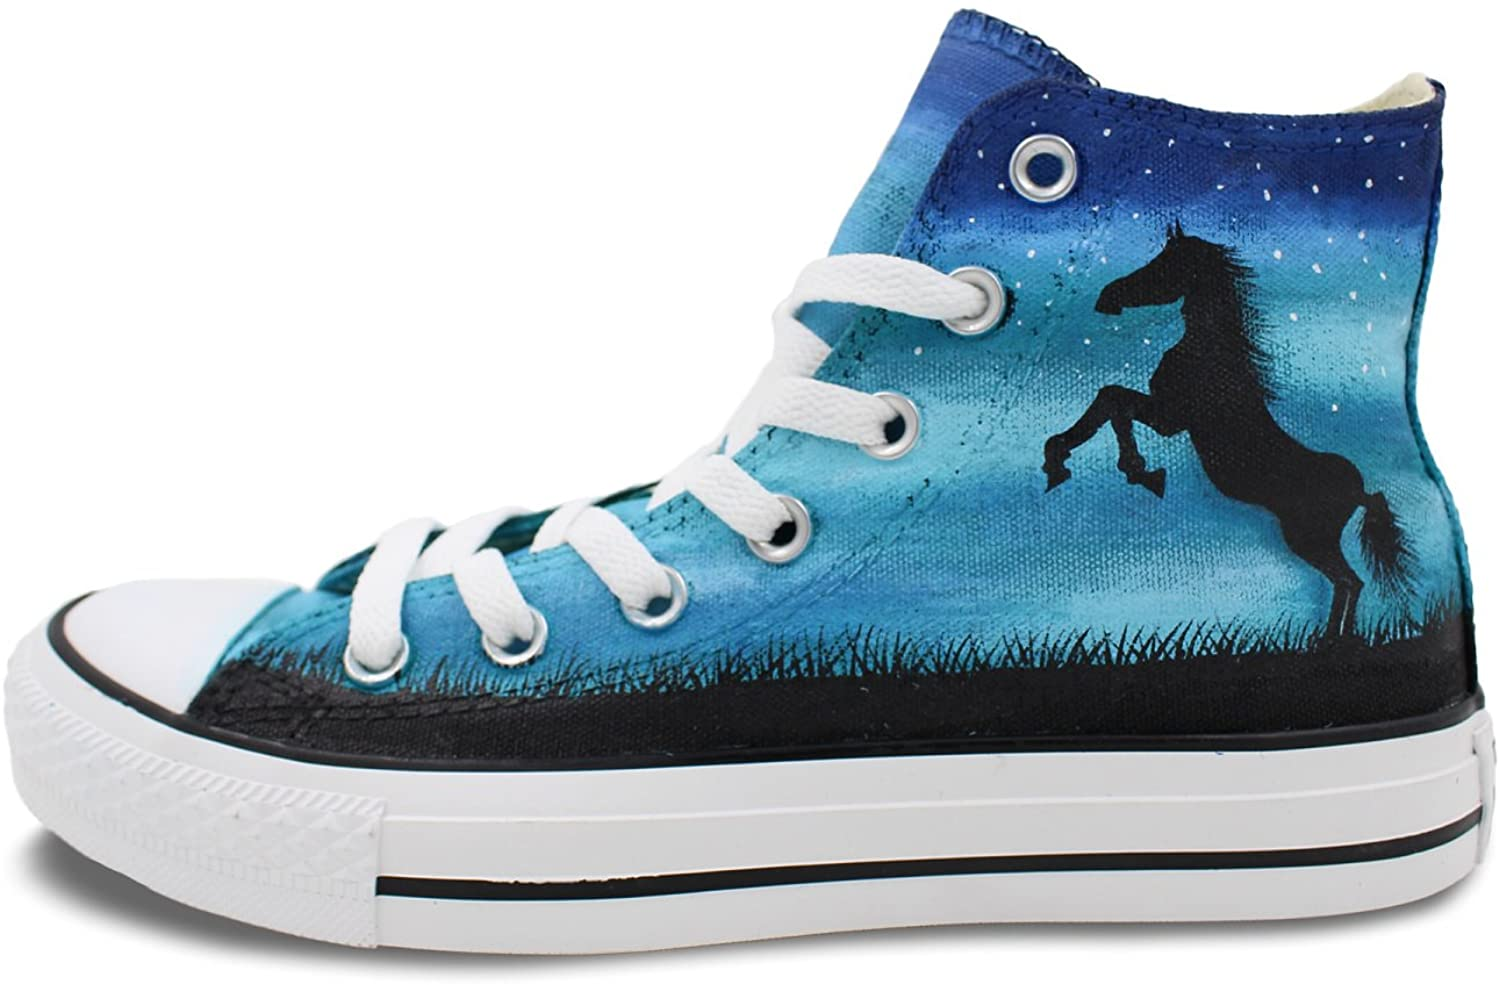 Wen Original Design Hand Painted Horse Casual Shoes Men Women's Canvas Sneakers